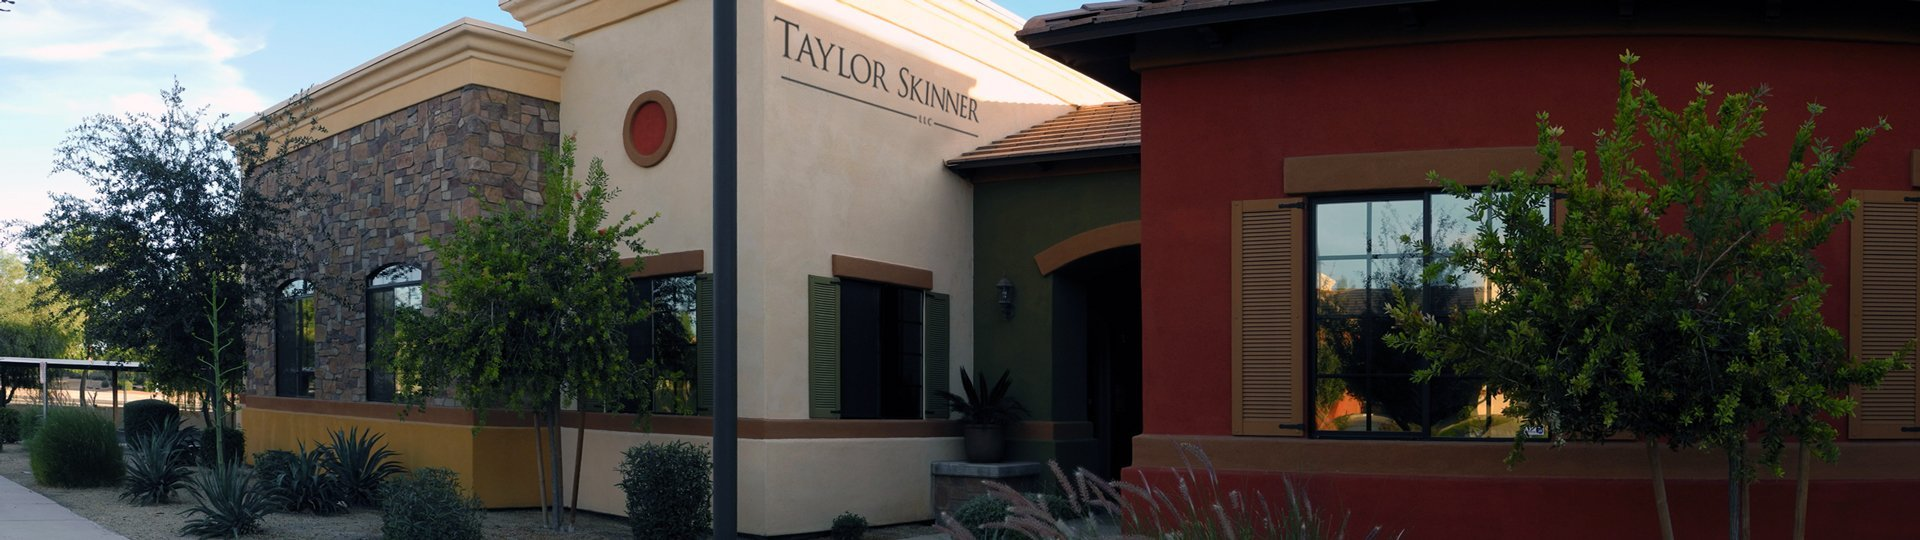 Taylor Skinner law offices near Power and Baseline Roads